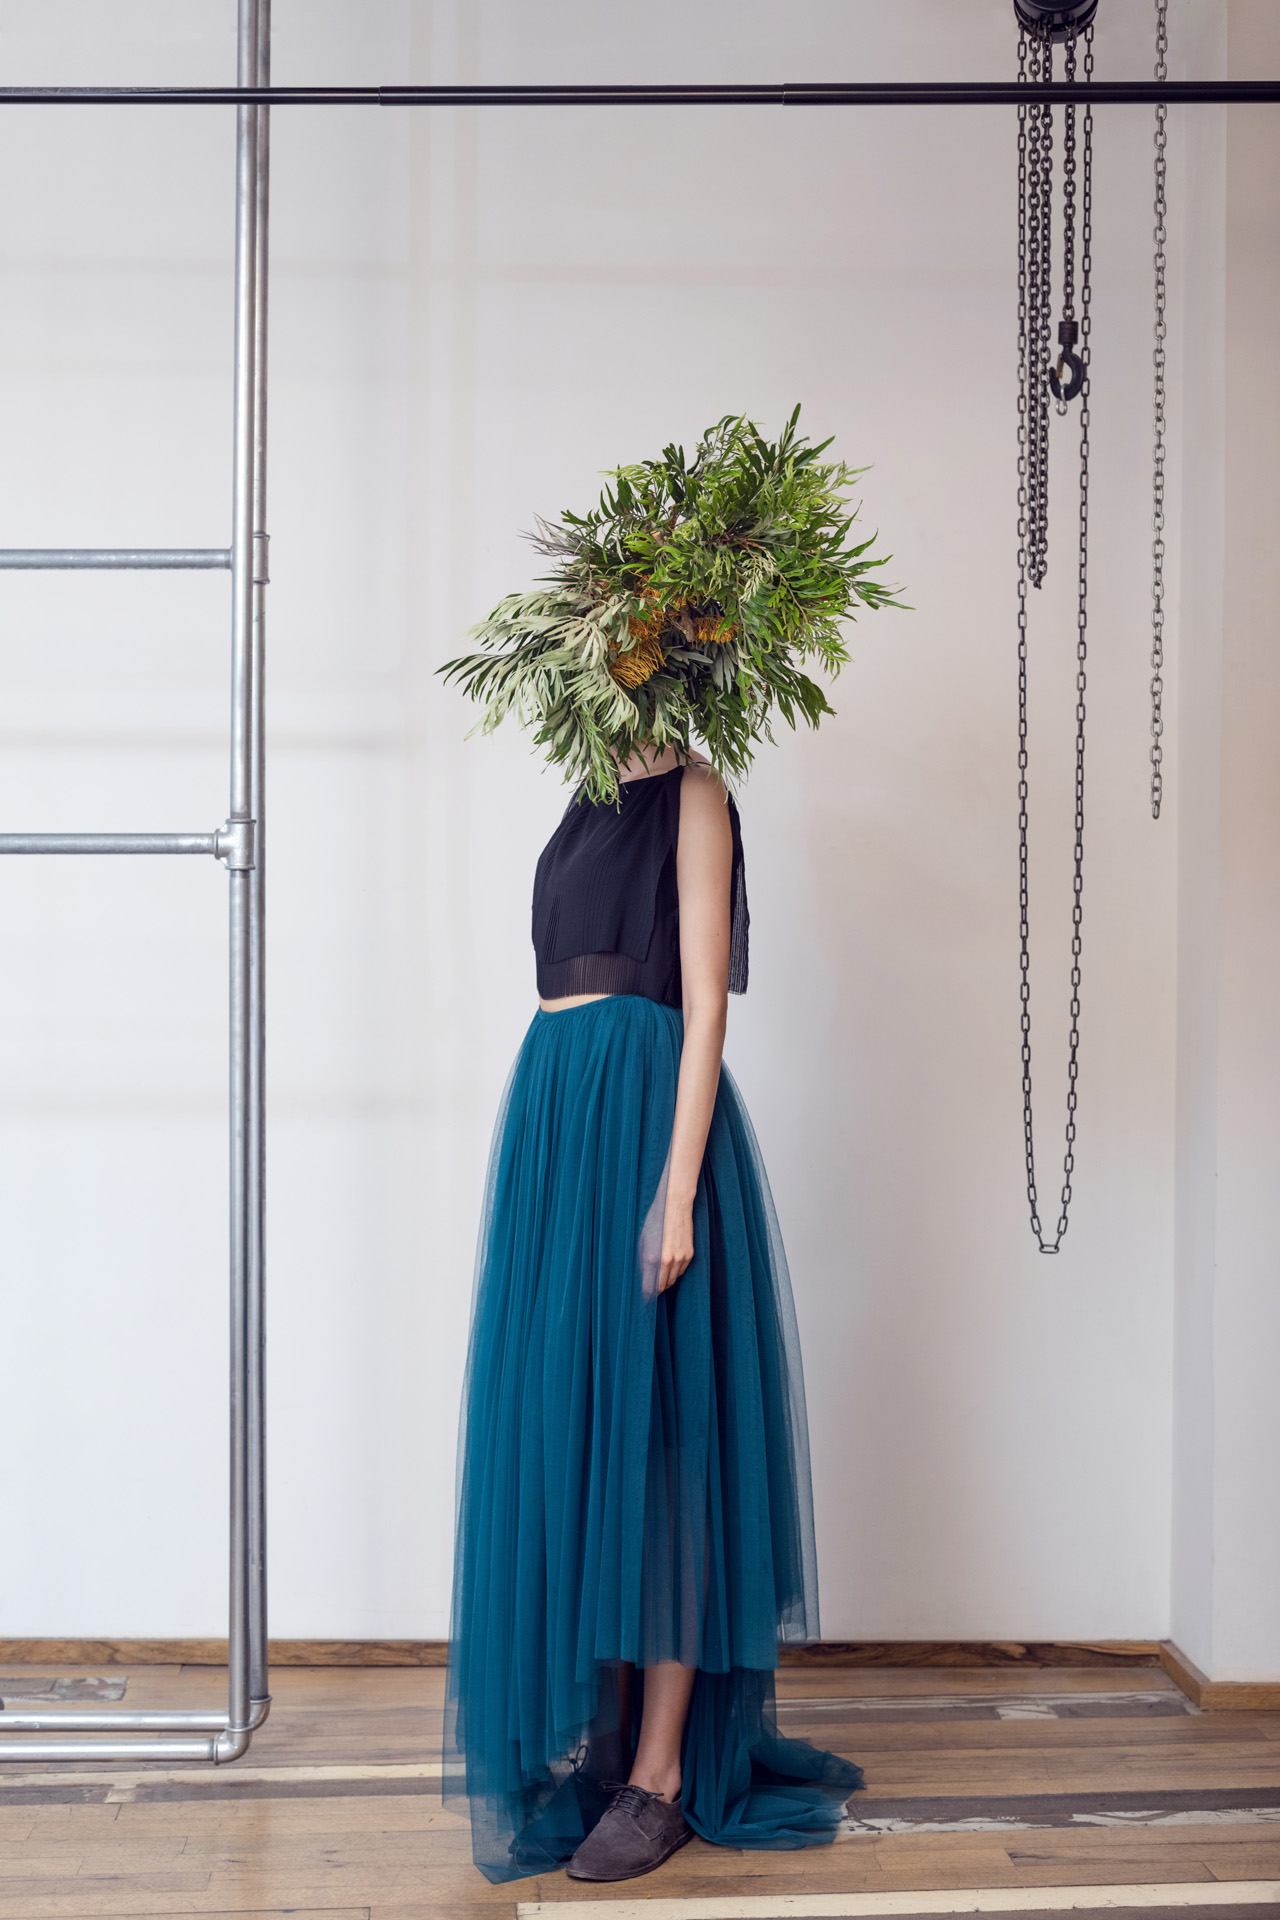 Lara Khoury | LK Stripped | Capsule 1-2019 | 13- Tiered Double Layer Black Cotton Crop Top and Voluminous Blue Green Tulle Maxi Skirt 1.jpg